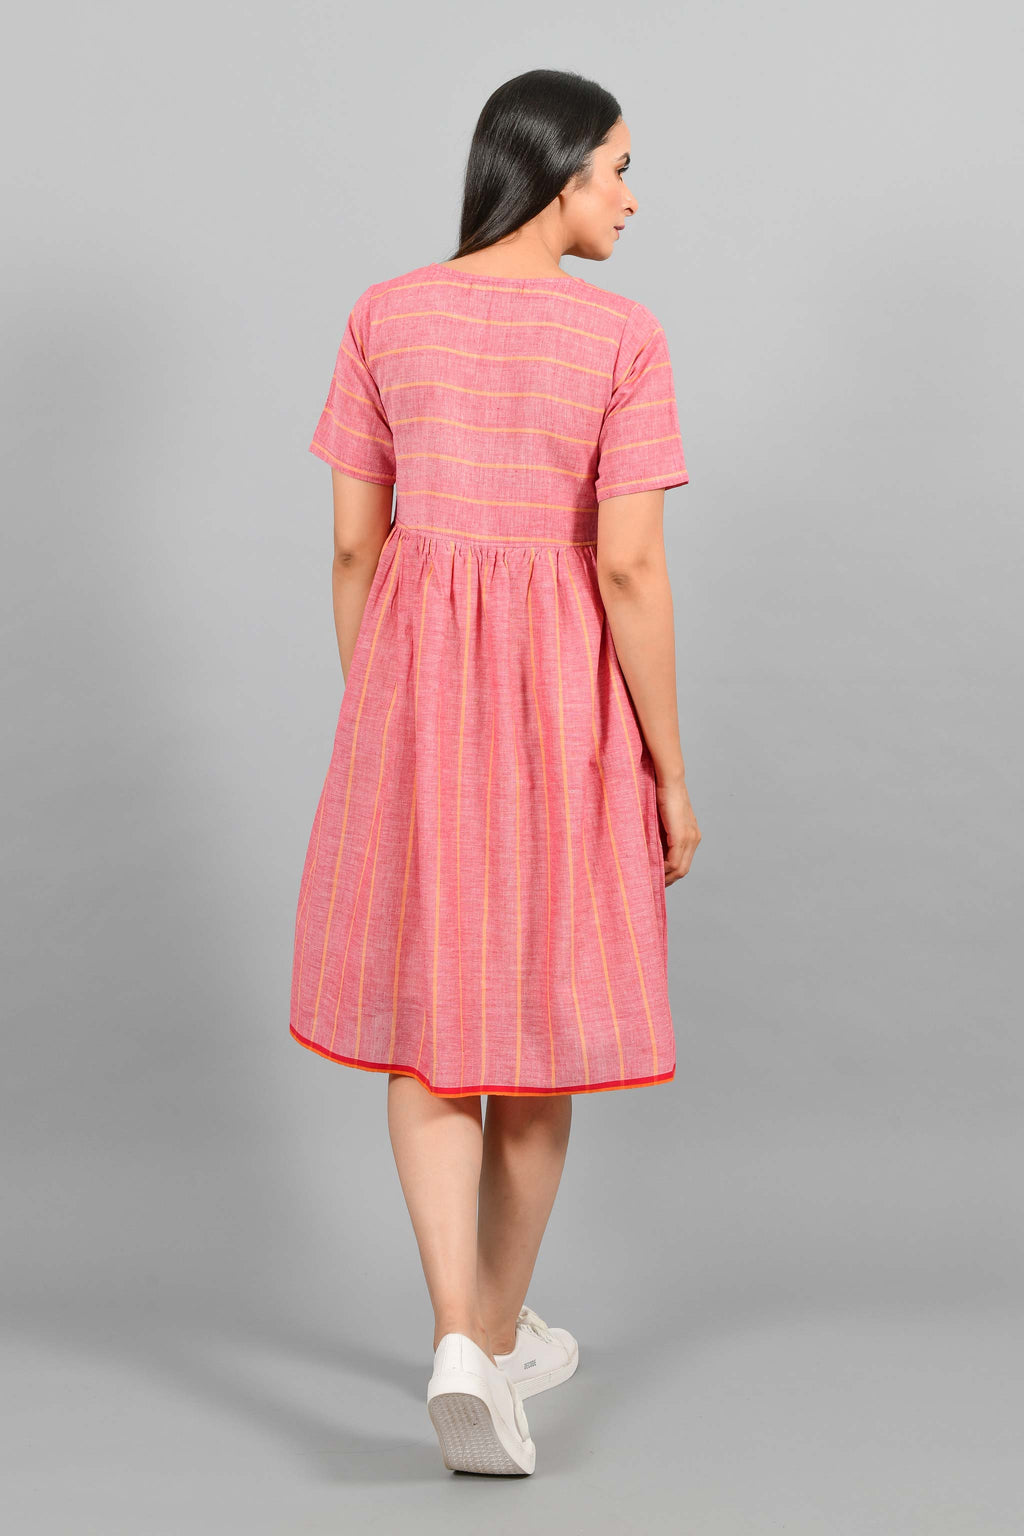 Back pose of an Indian female womenswear fashion model in a red chambray handspun and handwoven khadi cotton with orange stripes by Cotton Rack. The dress has front buttoned yoke and gathers at waist.